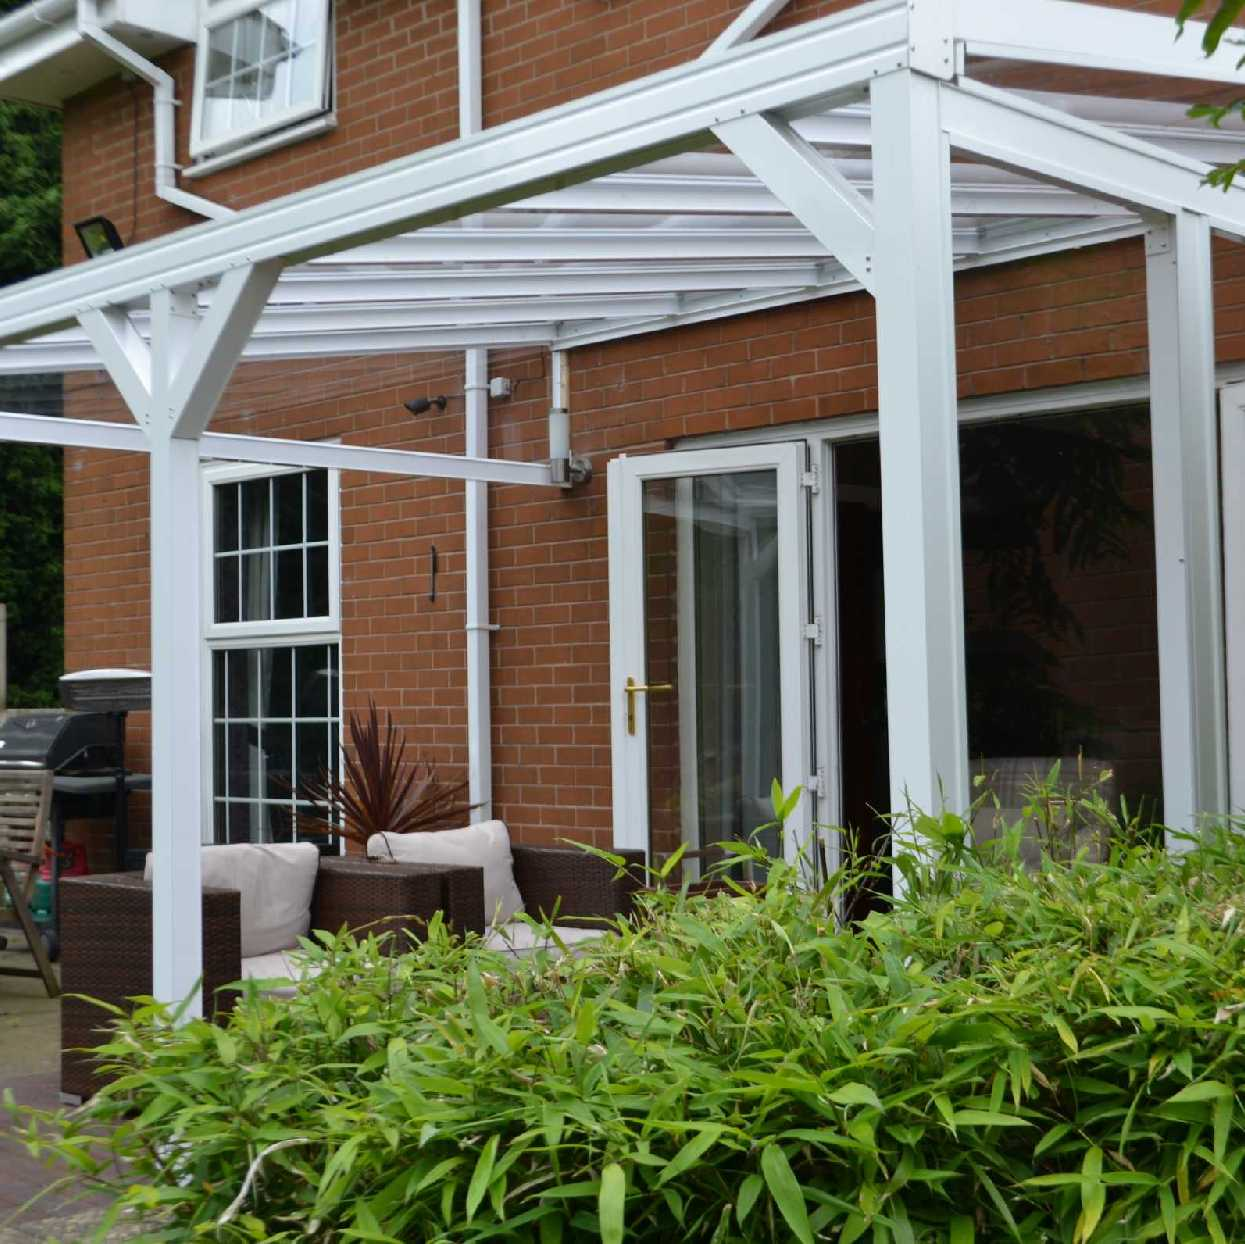 Omega Smart Lean-To Canopy UNGLAZED for 6mm Glazing - 7.7m (W) x 3.5m (P), (4) Supporting Posts from Omega Build